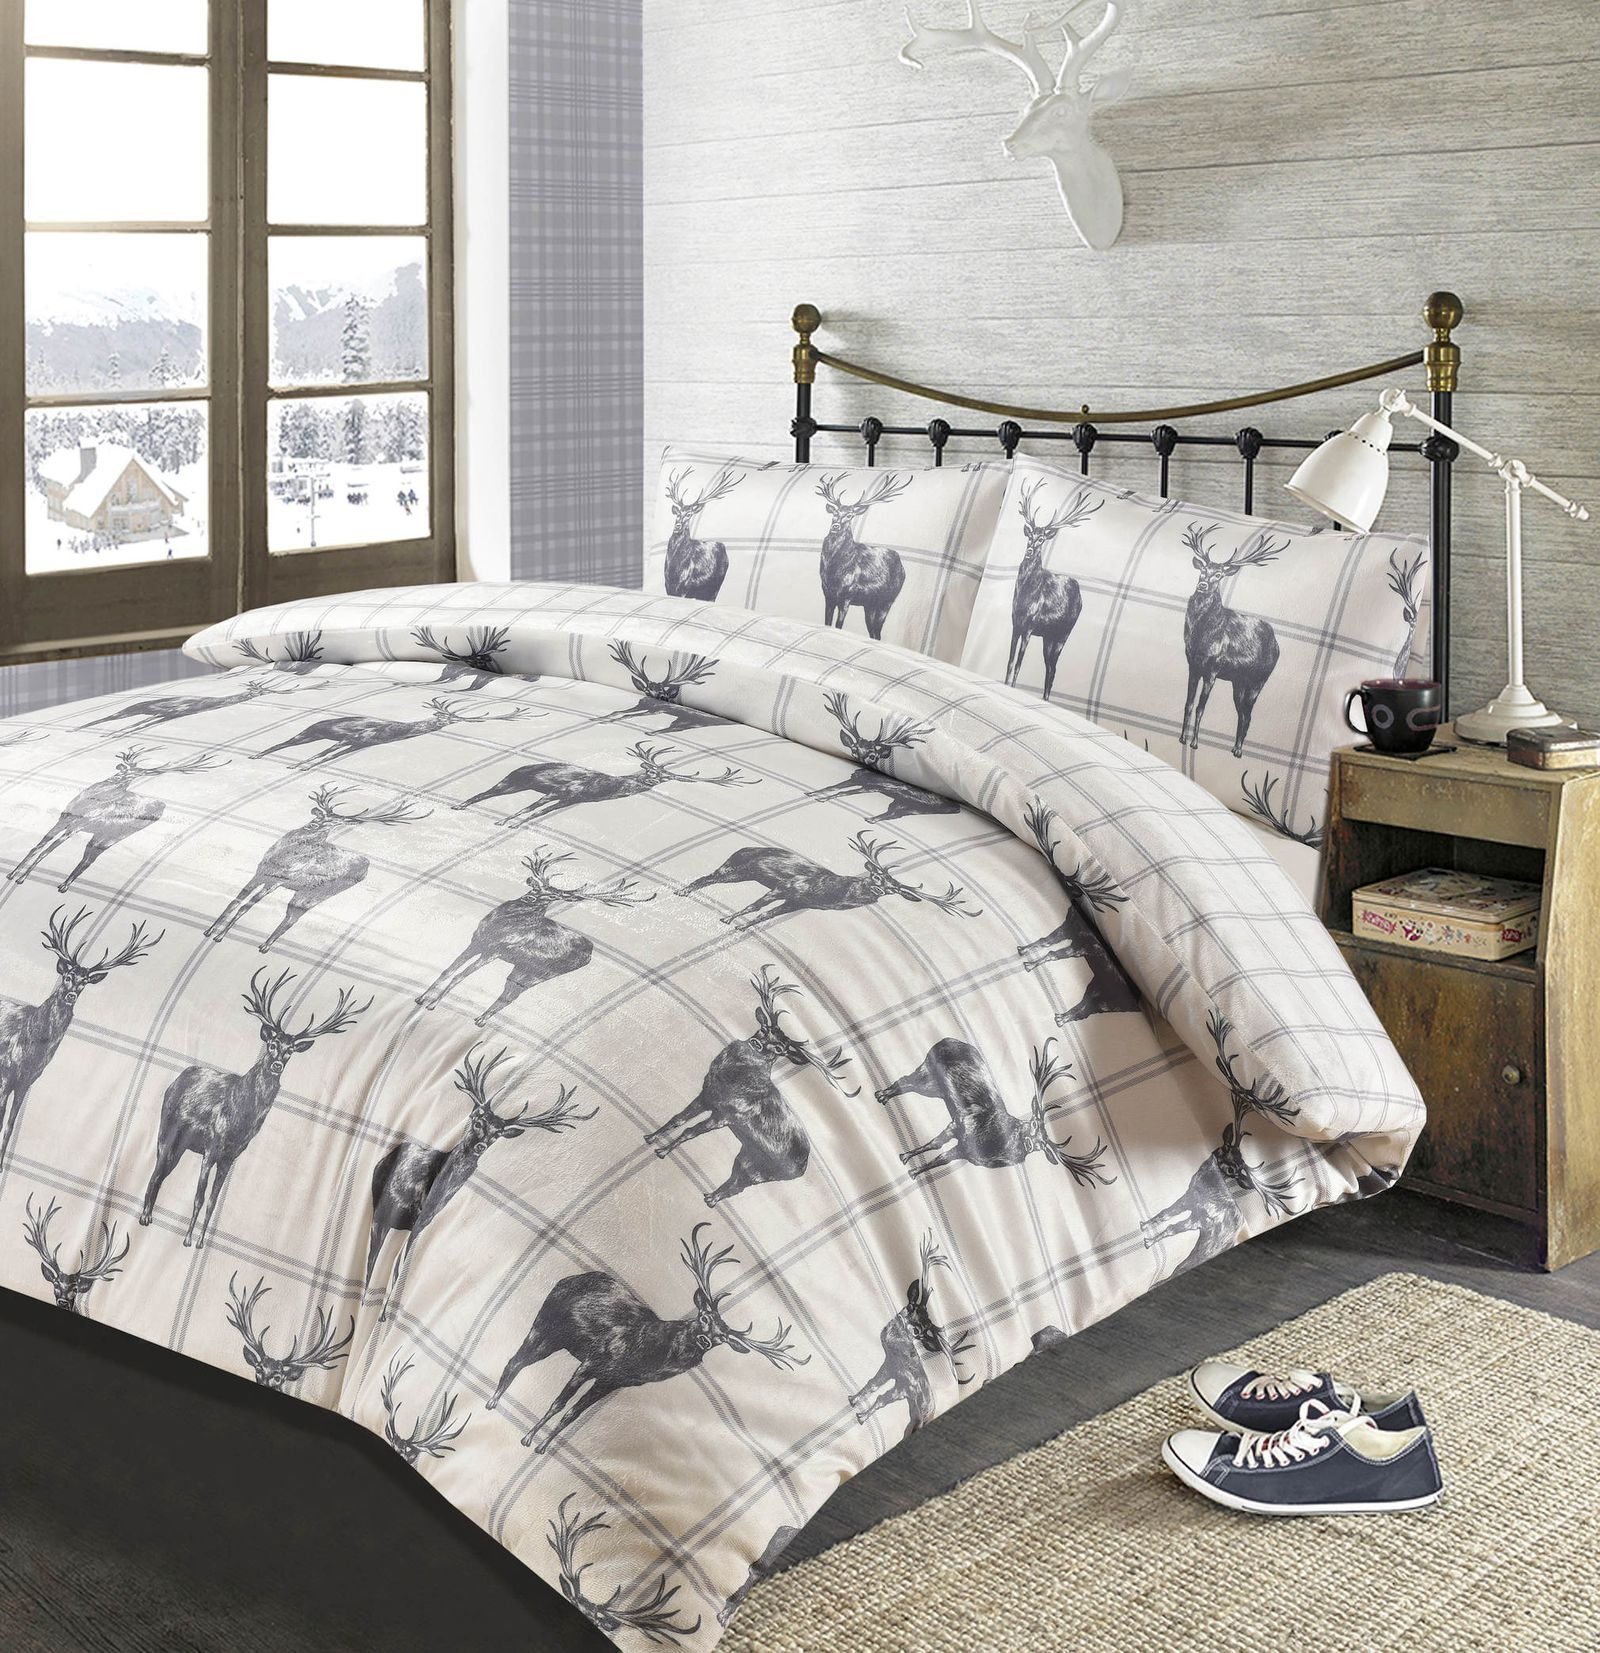 The Best Christmas Bedding Sets For The Festive Season Christmas Bedding Set Bed Christmas Bedding